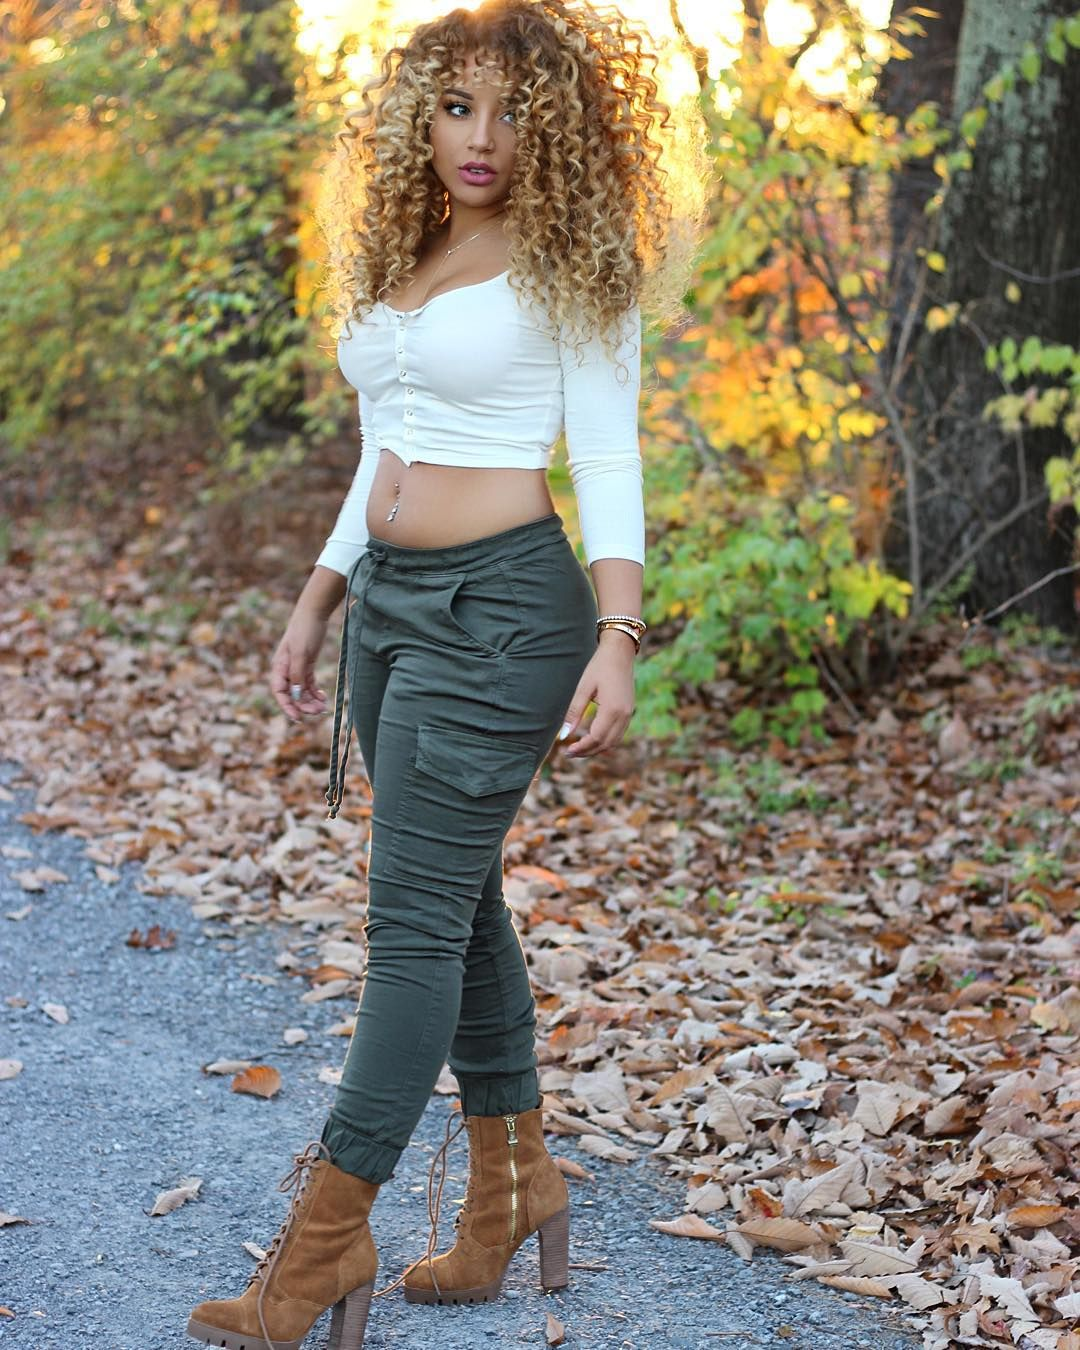 Black Girl Fashion Trends: Pin On My Style